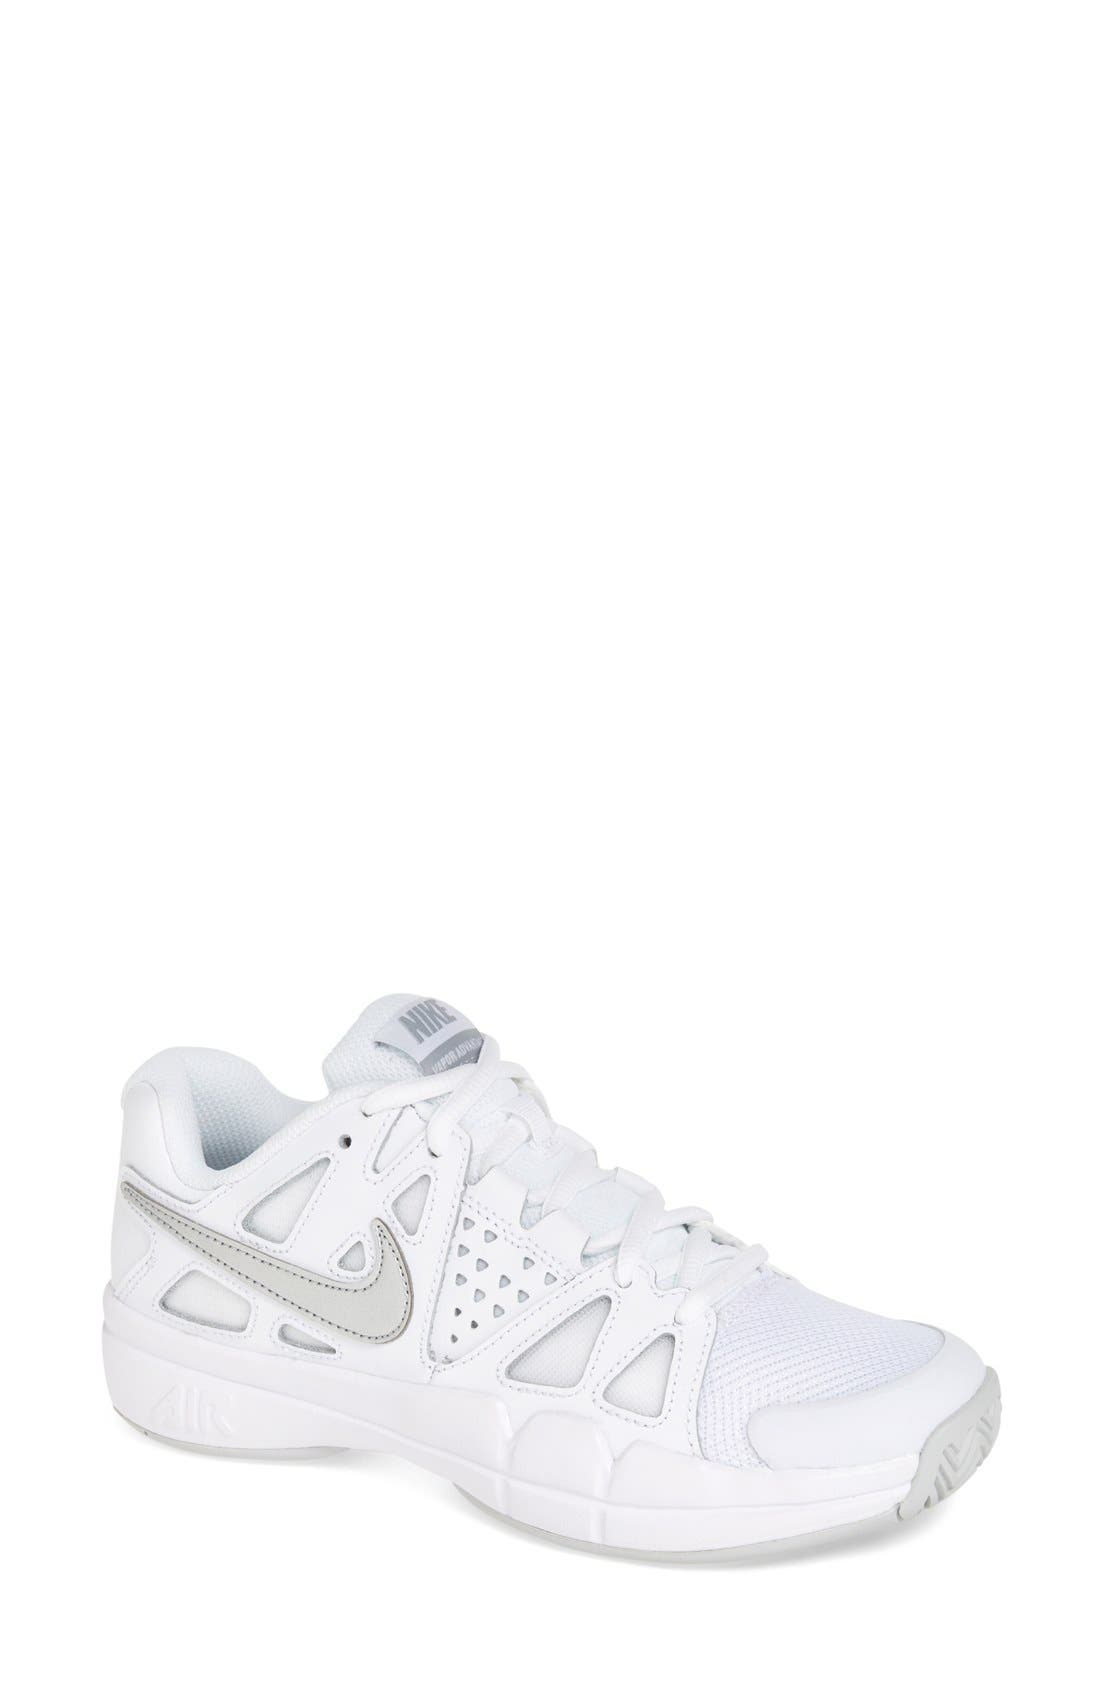 Main Image - Nike 'Air Vapor Advantage' Tennis Shoe (Women)